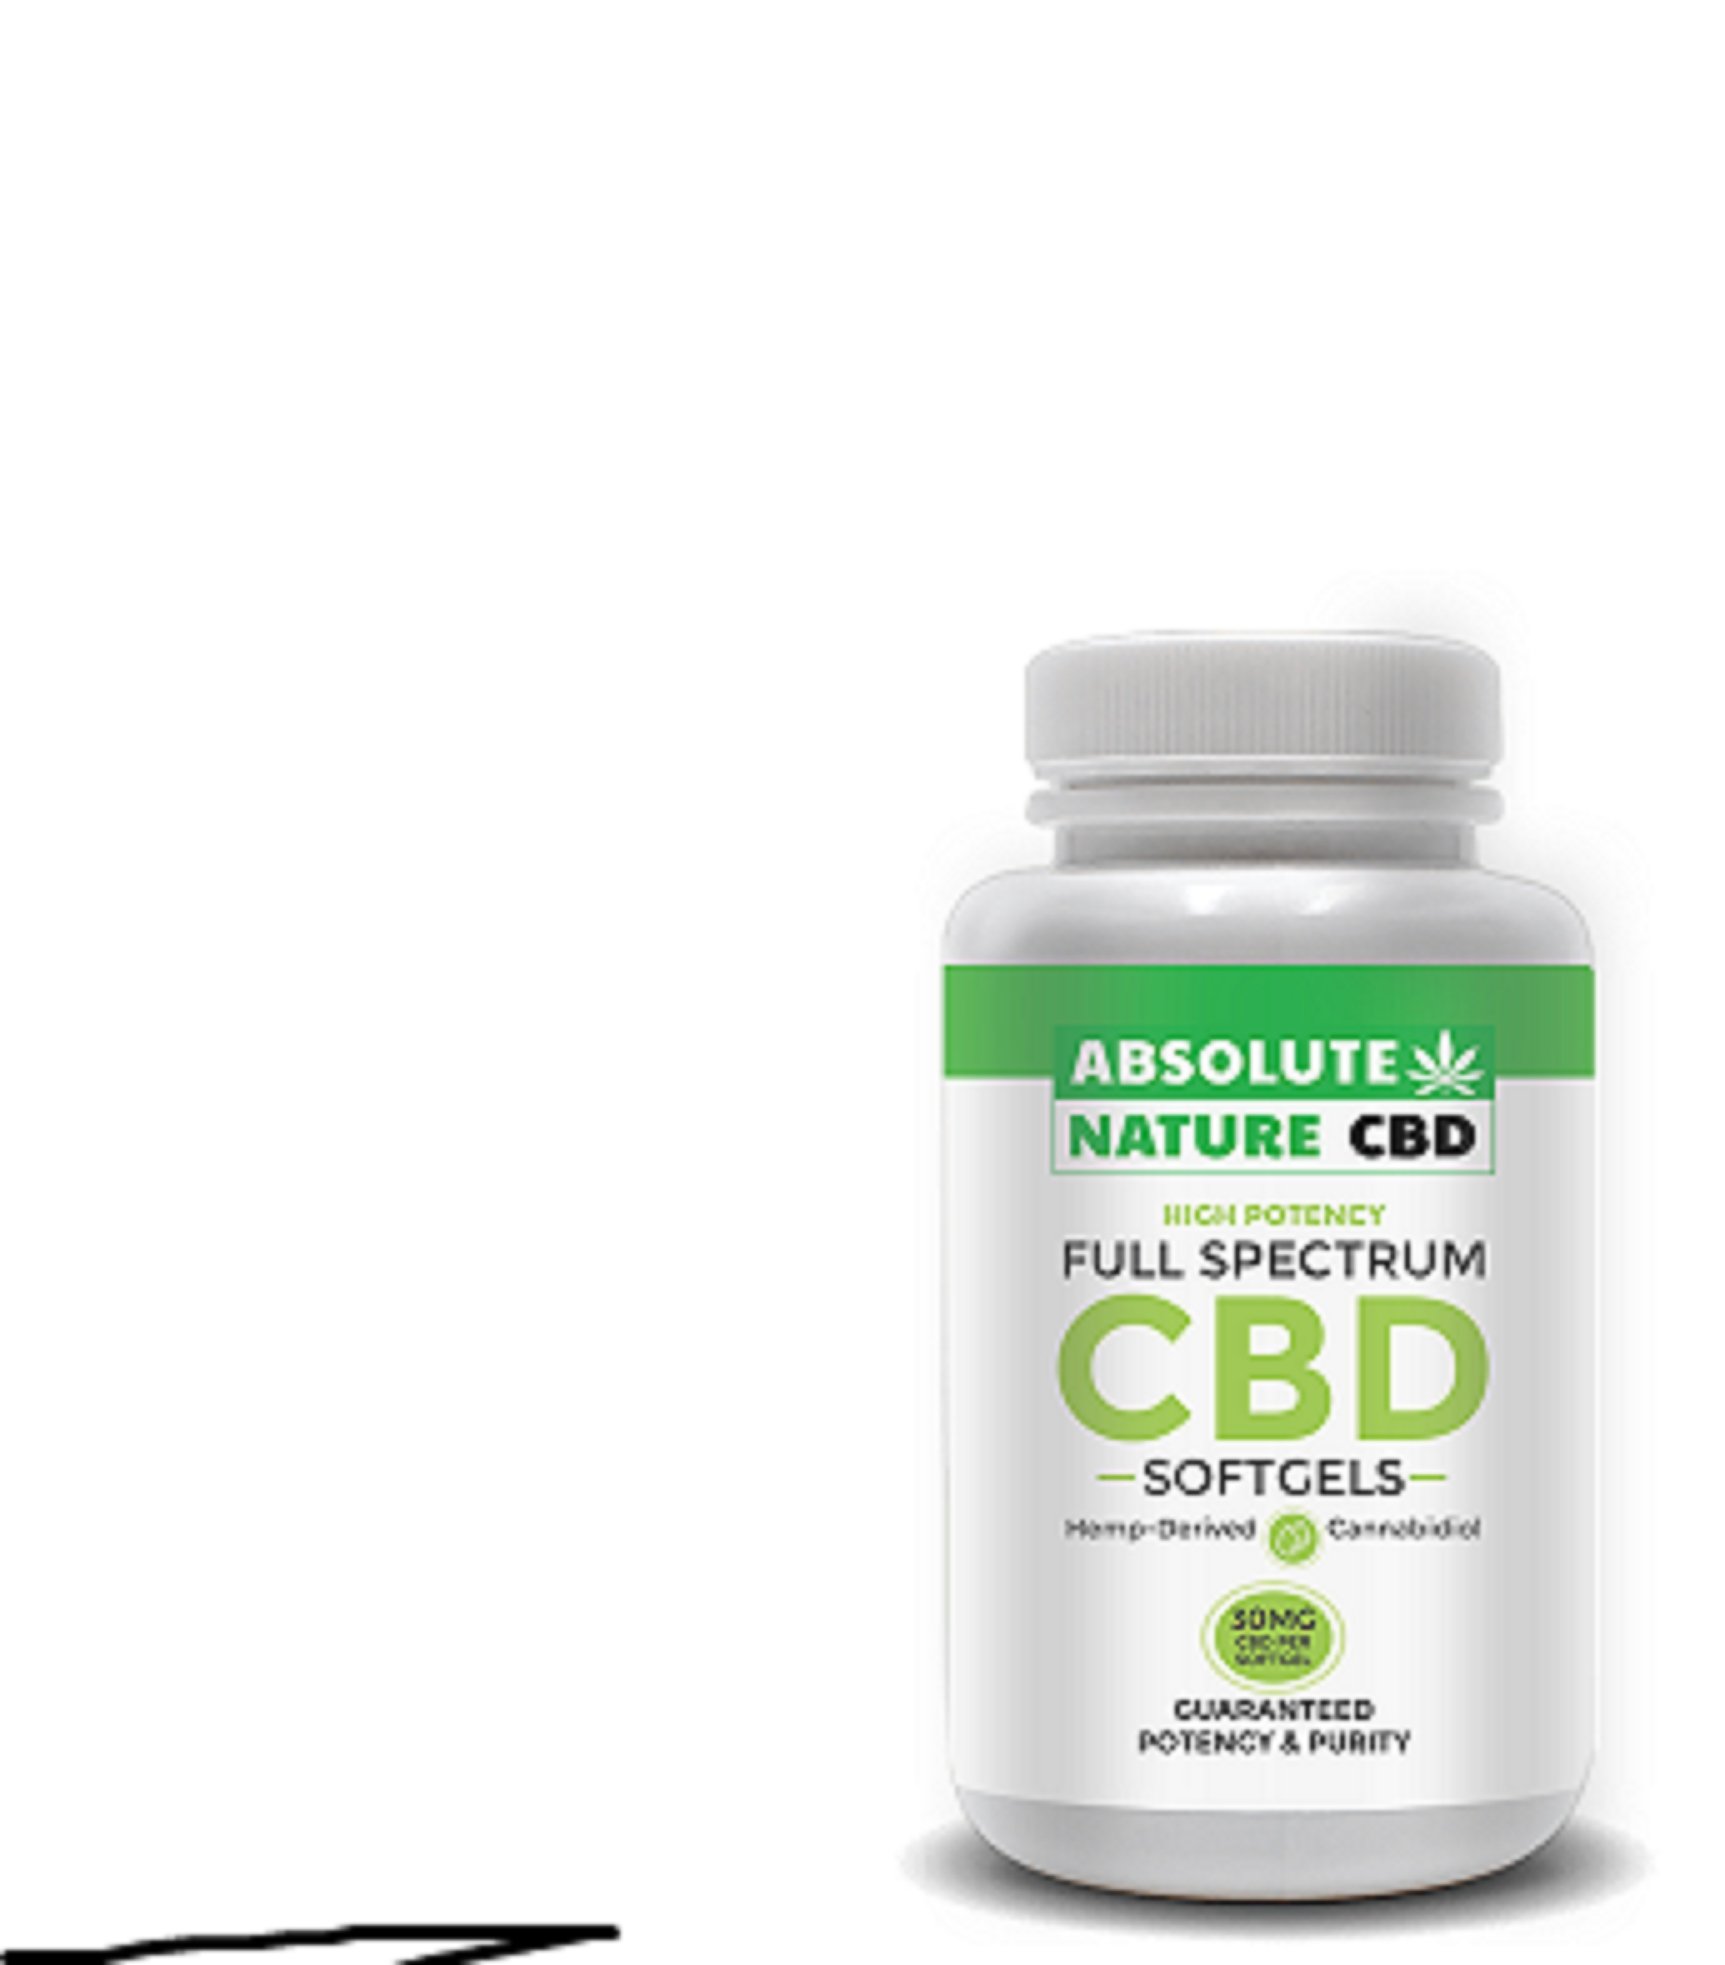 Absolute Nature CBD SoftGels